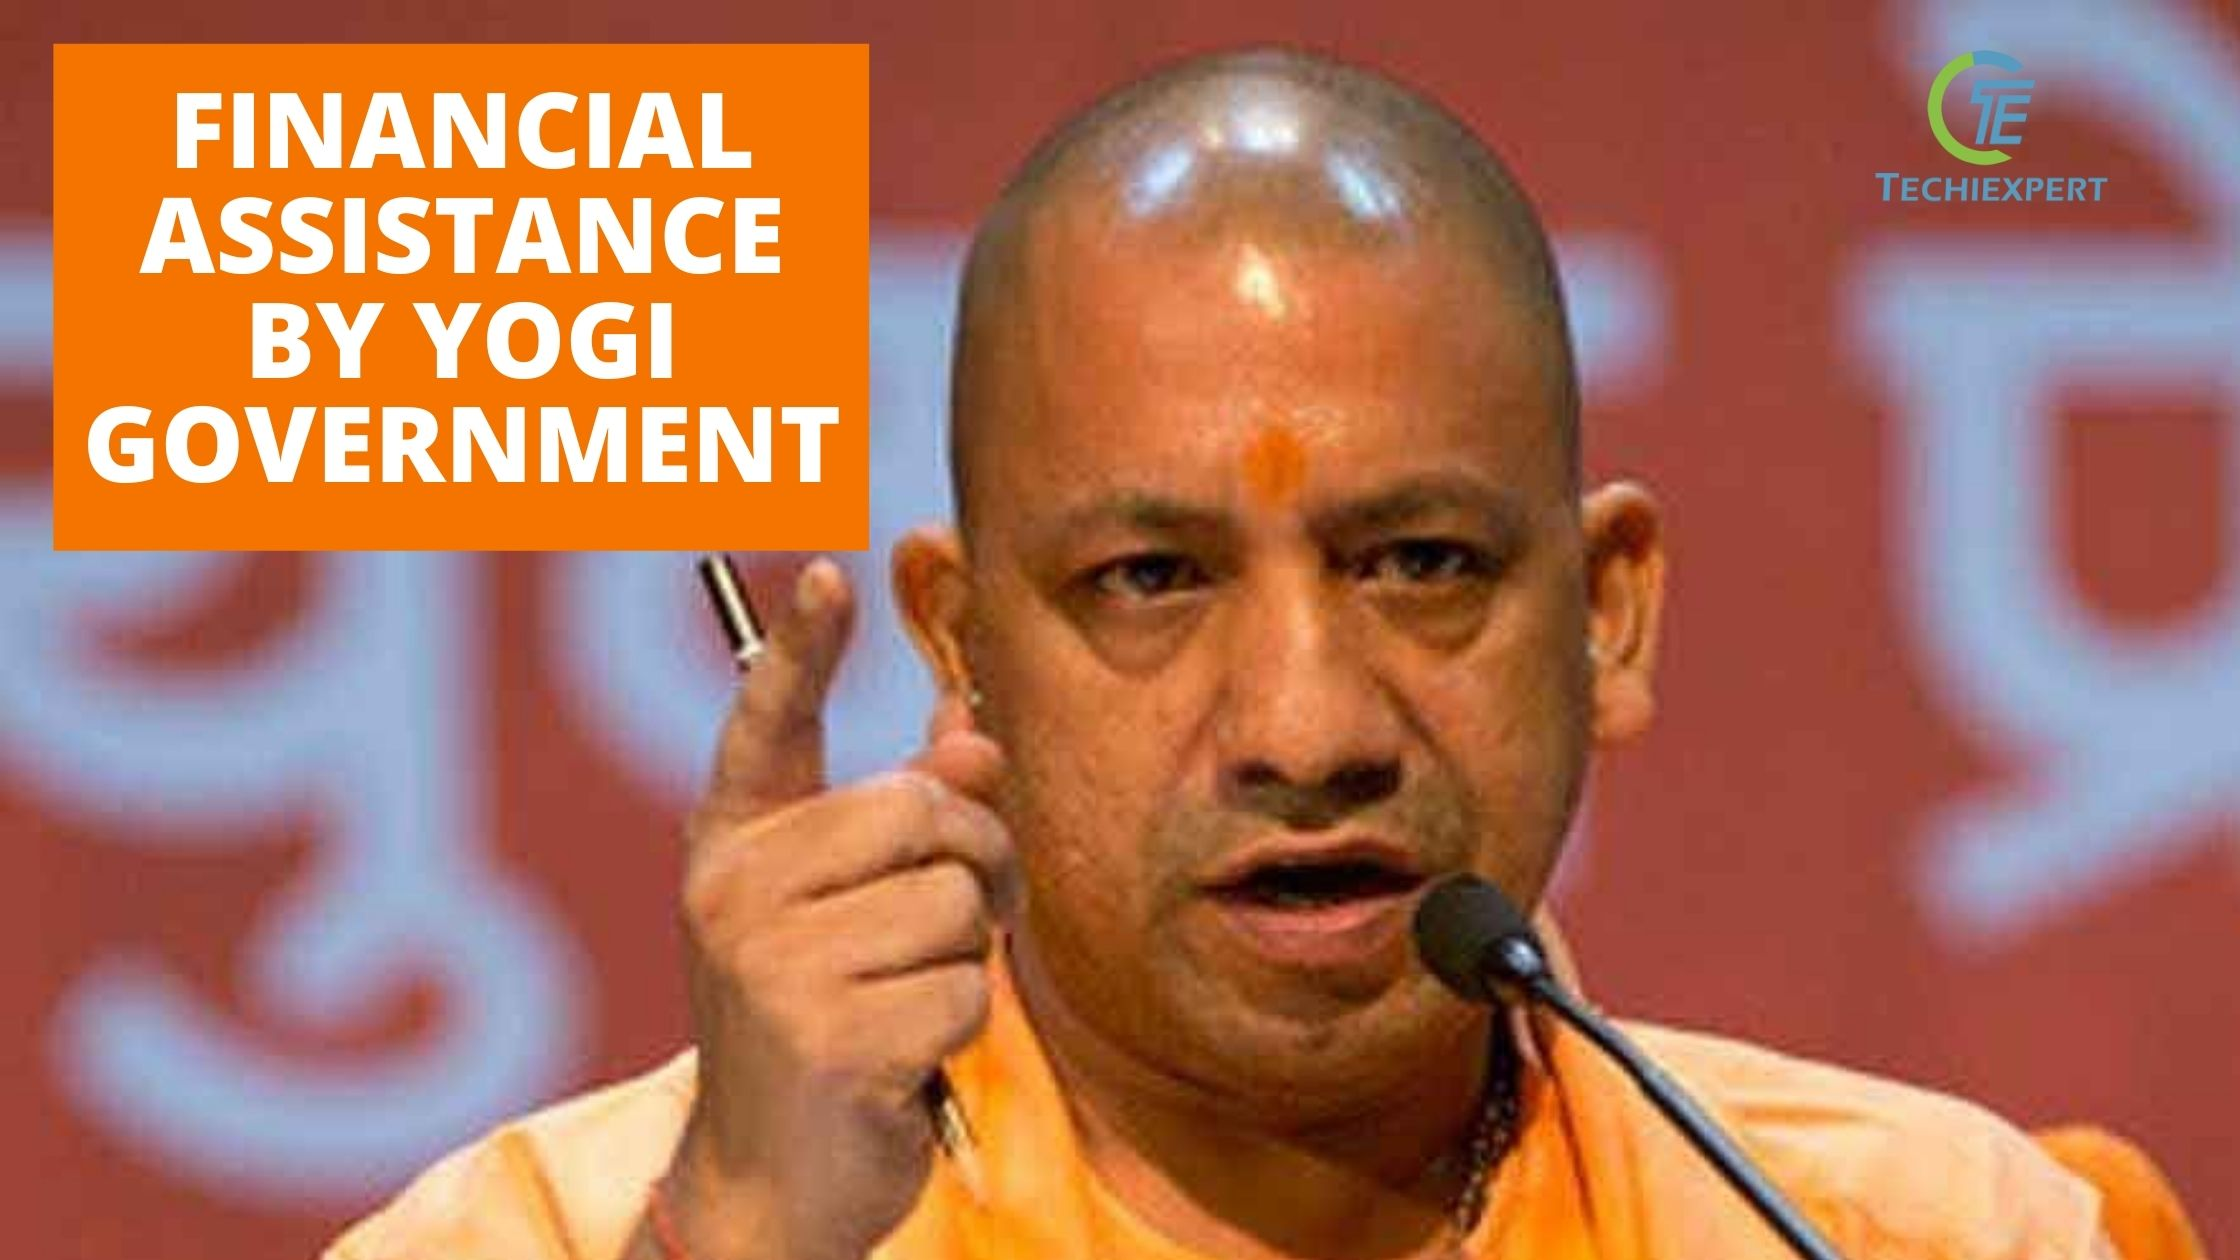 Financial assistance by Yogi Government